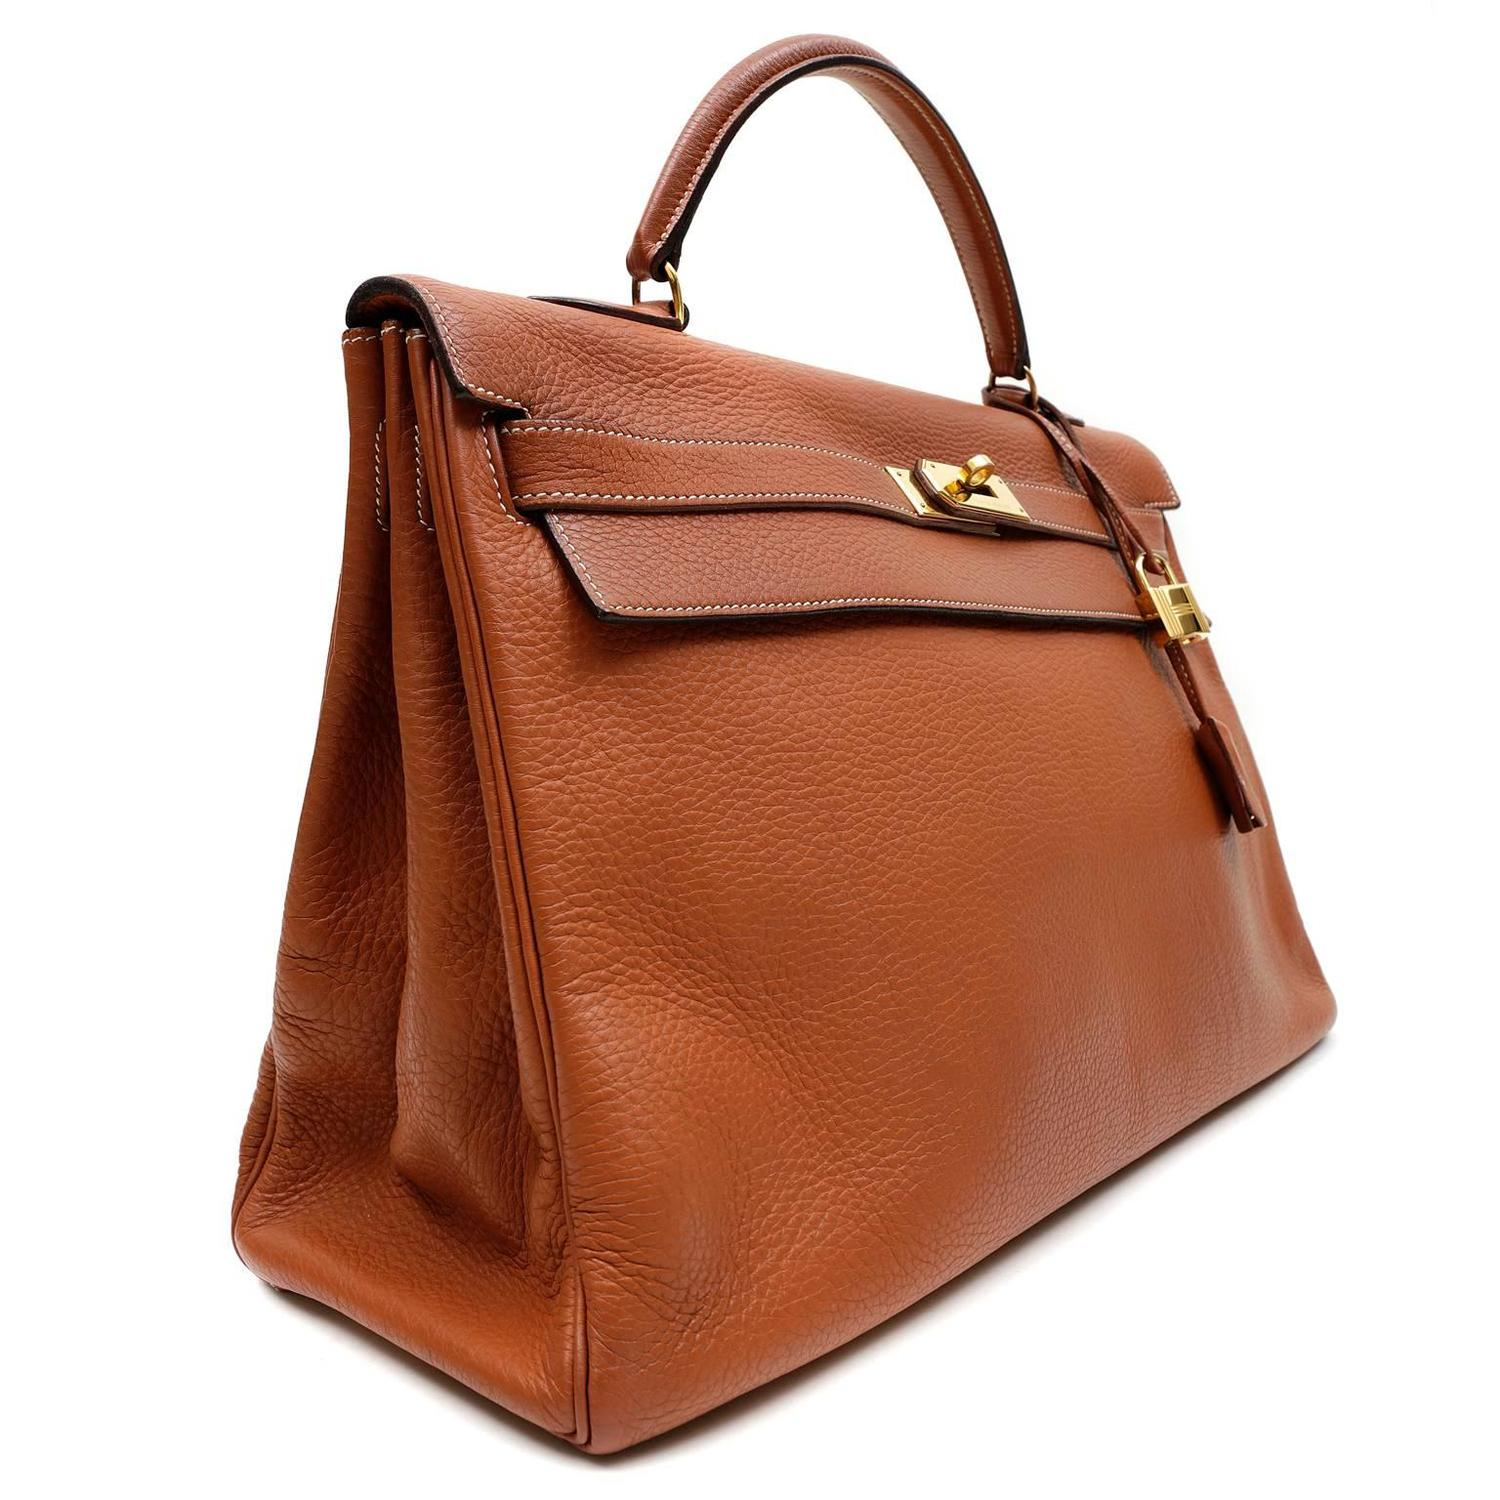 Herm��s Terracotta Togo Leather 40 cm Kelly Bag, GHW For Sale at ...